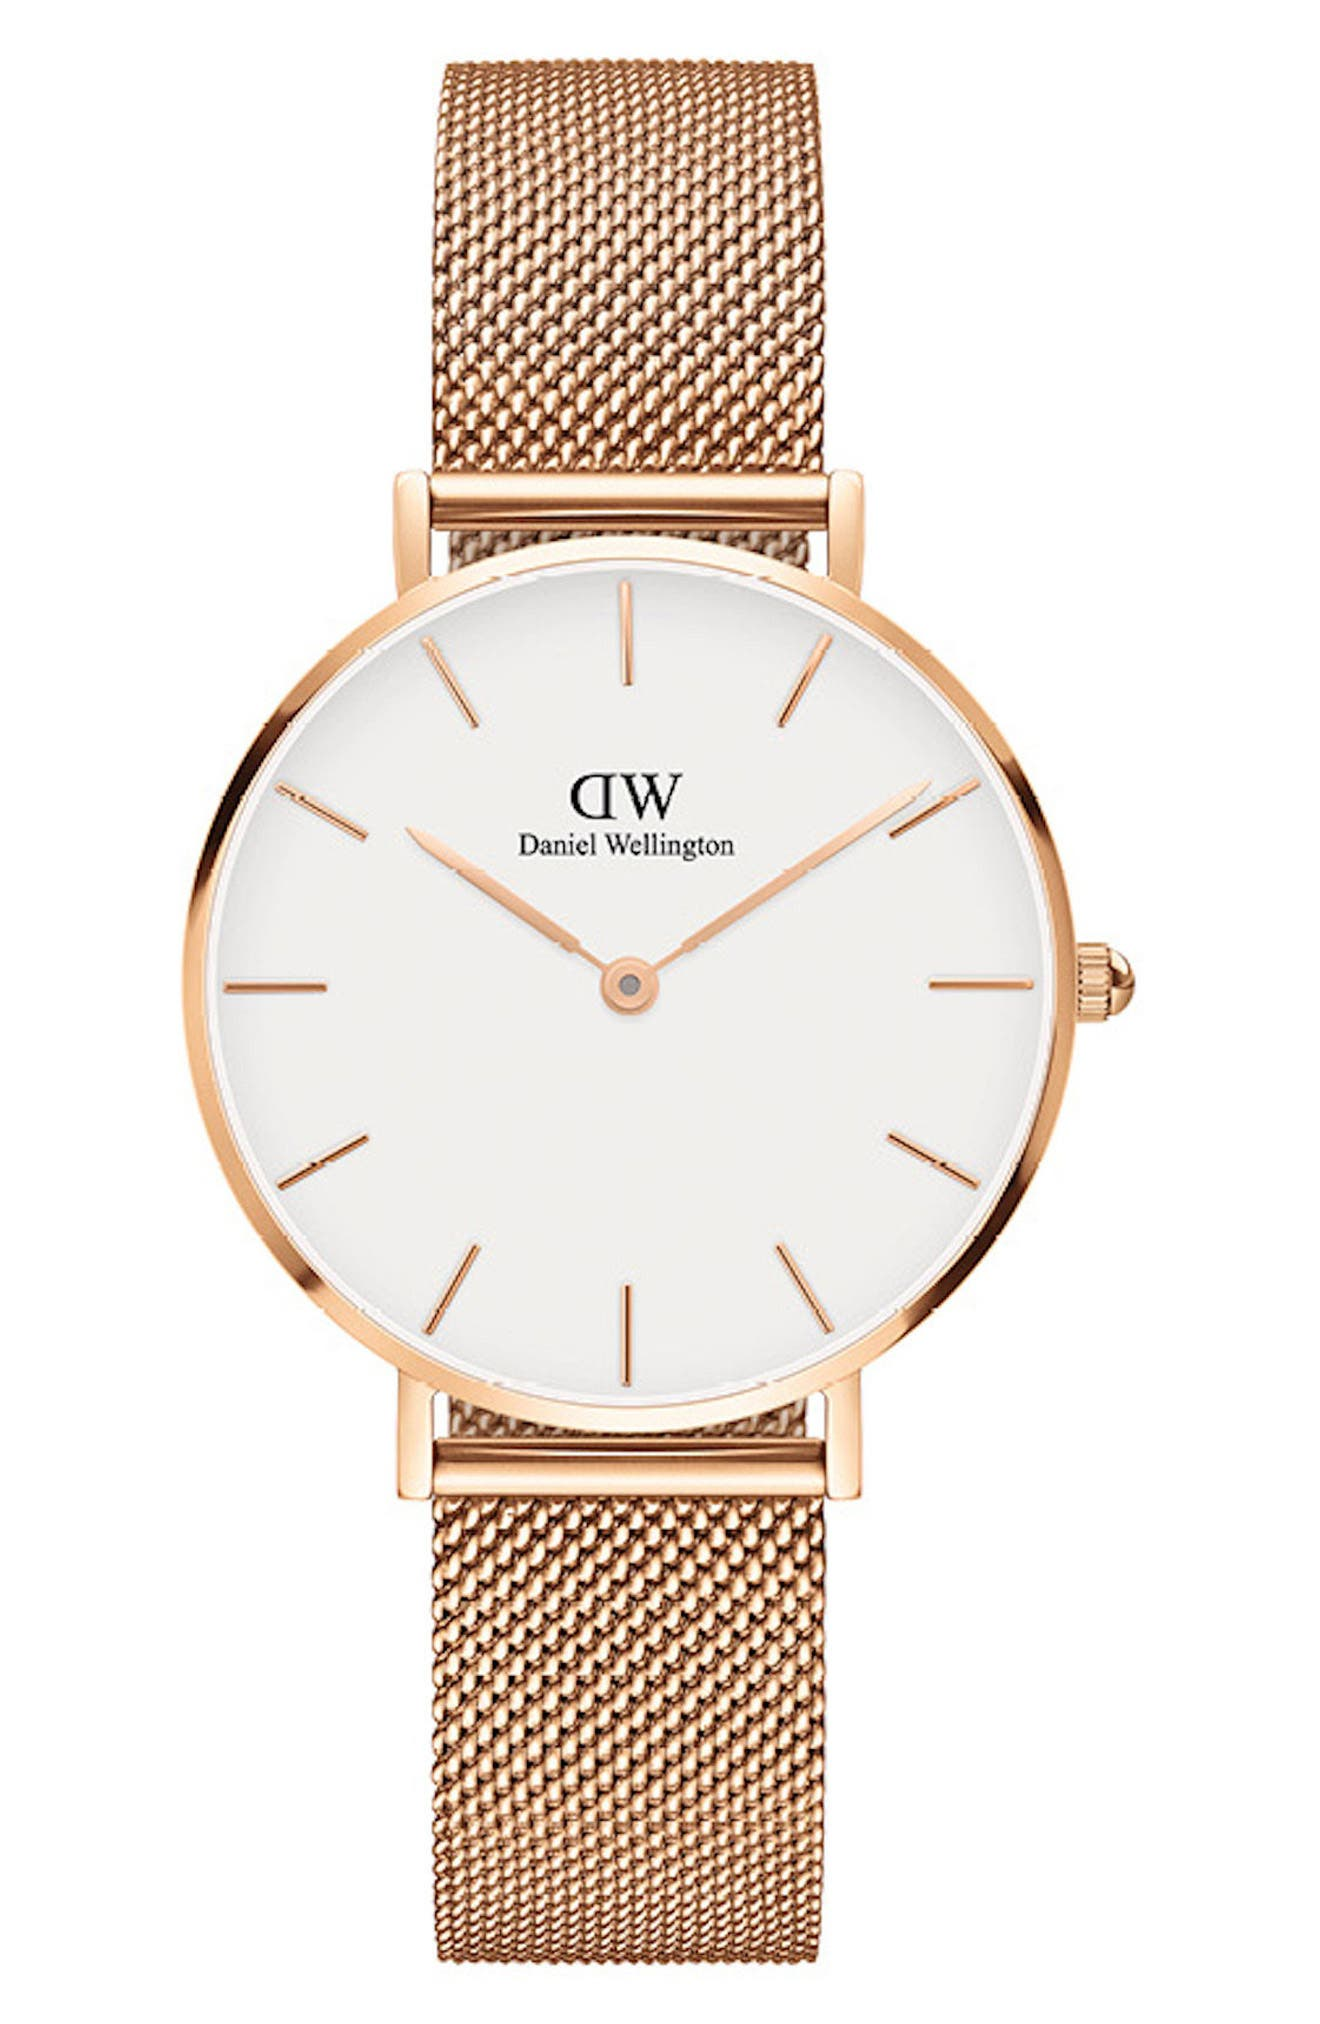 DANIEL WELLINGTON Classic Petite Mesh Strap Watch, 32mm, Main, color, ROSE GOLD/ WHITE/ ROSE GOLD